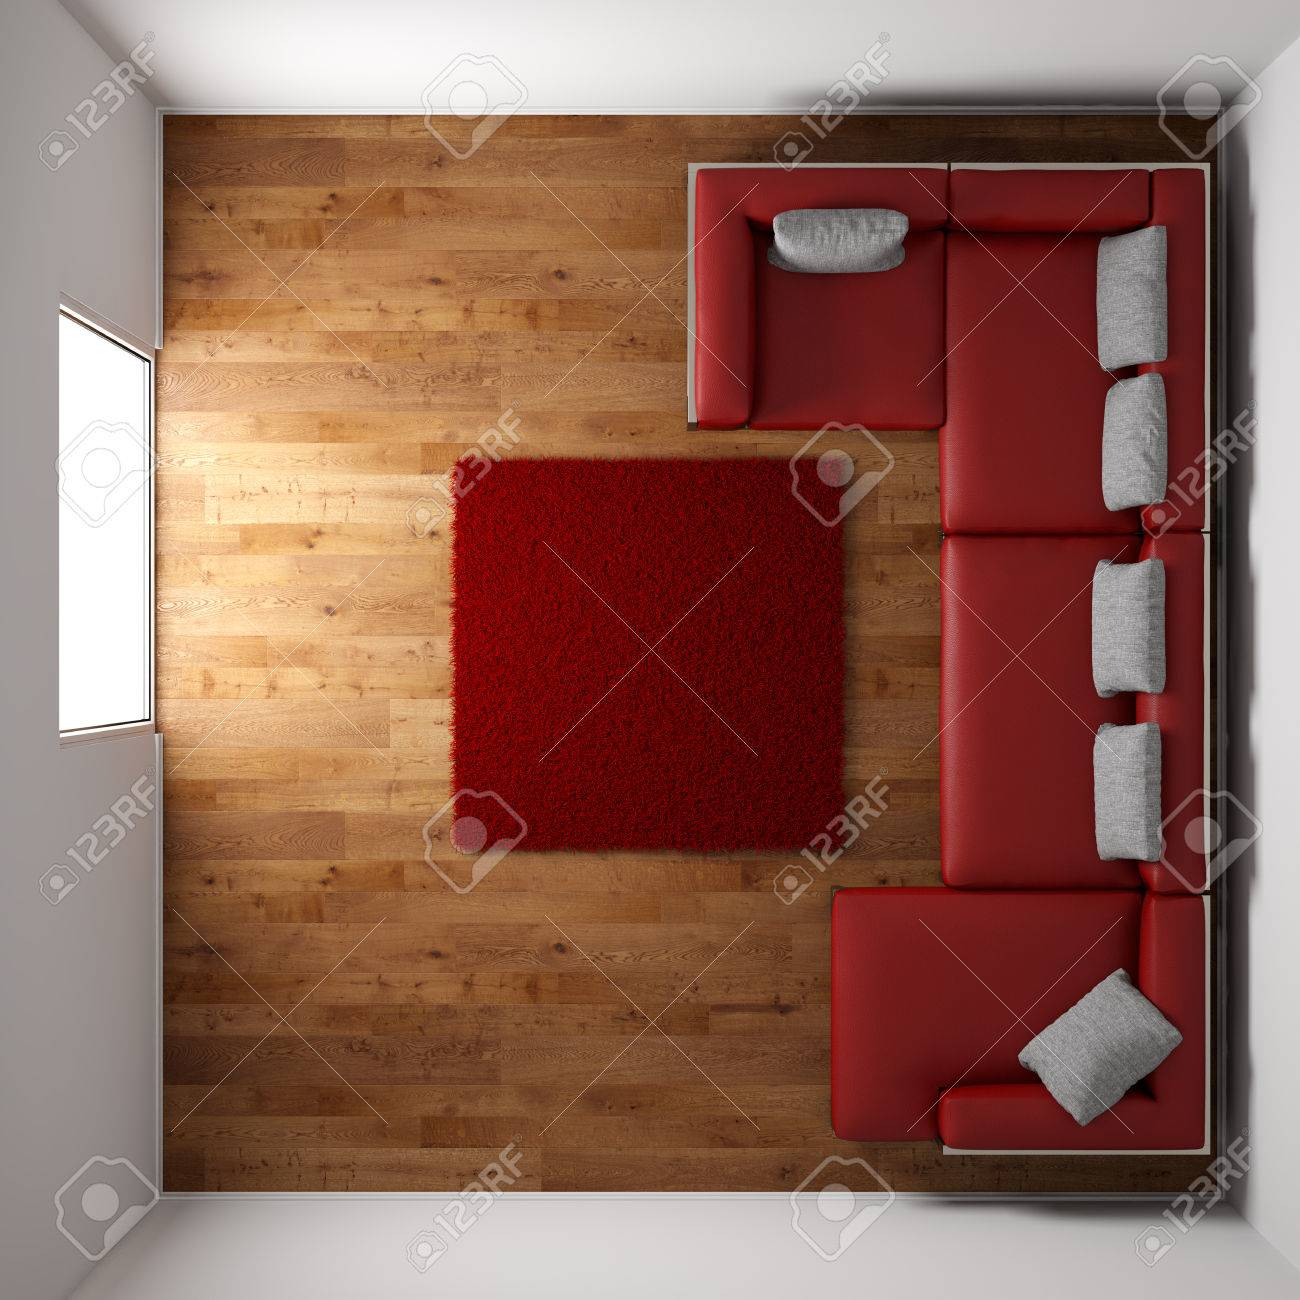 wooden floor texture with red leather couch and pillow top view stock photo